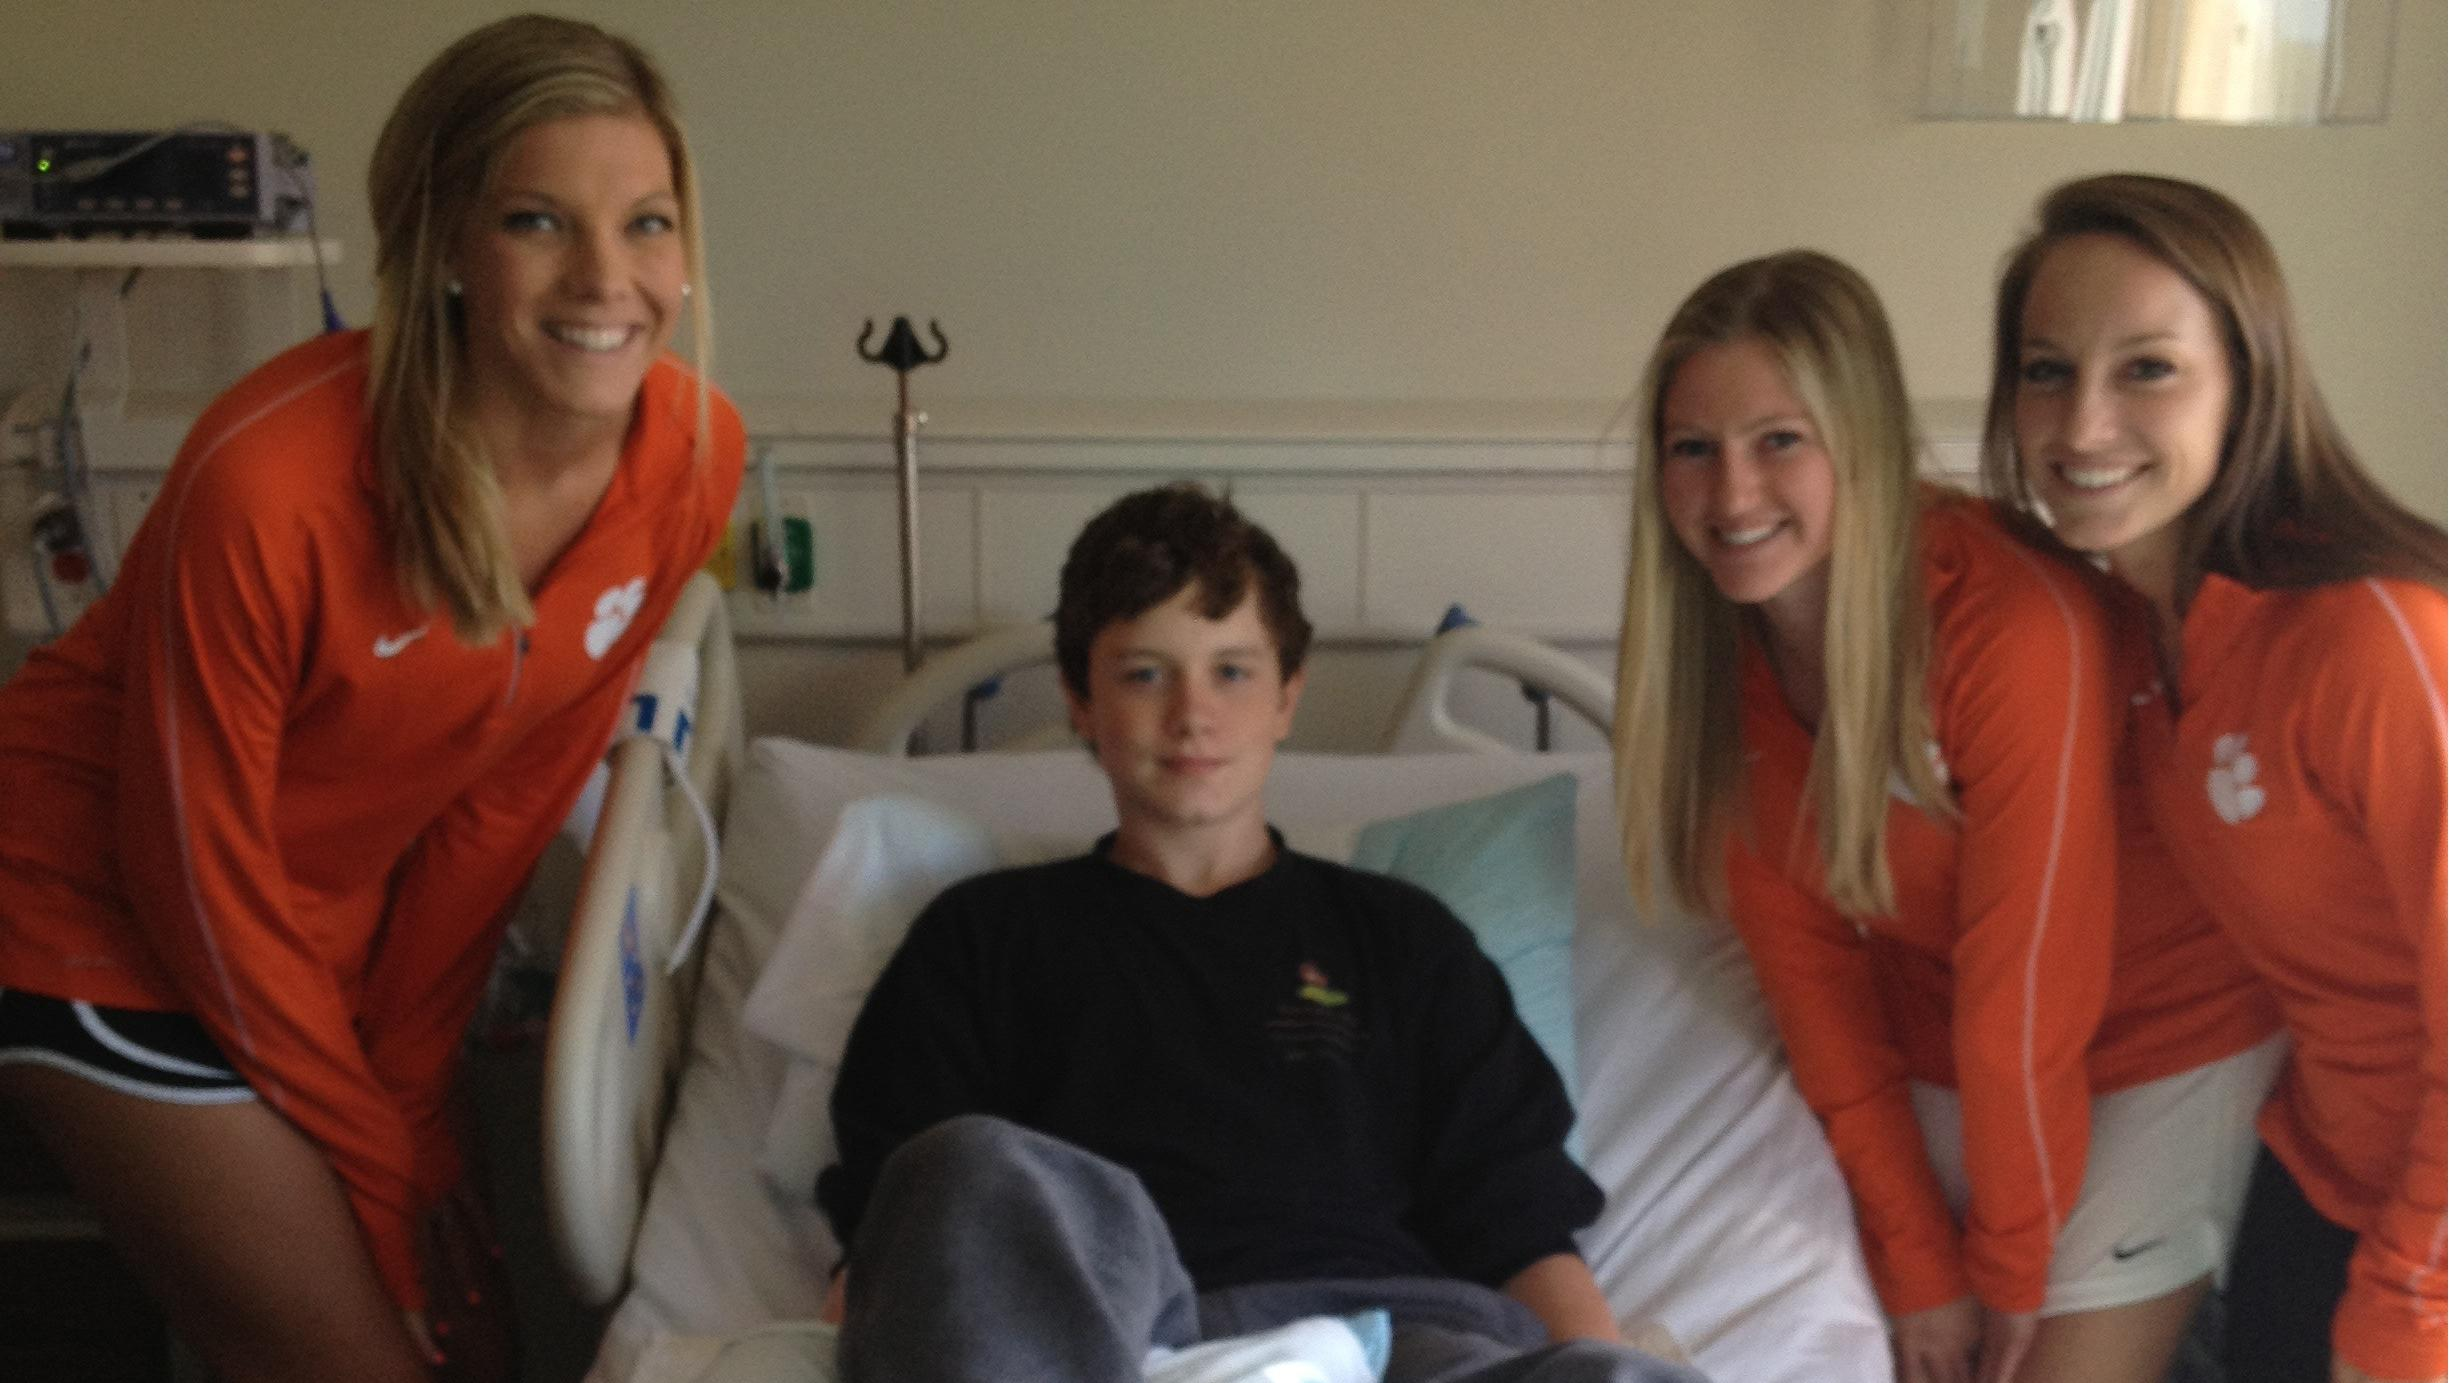 Clemson Women's Soccer Team in Action in the Community